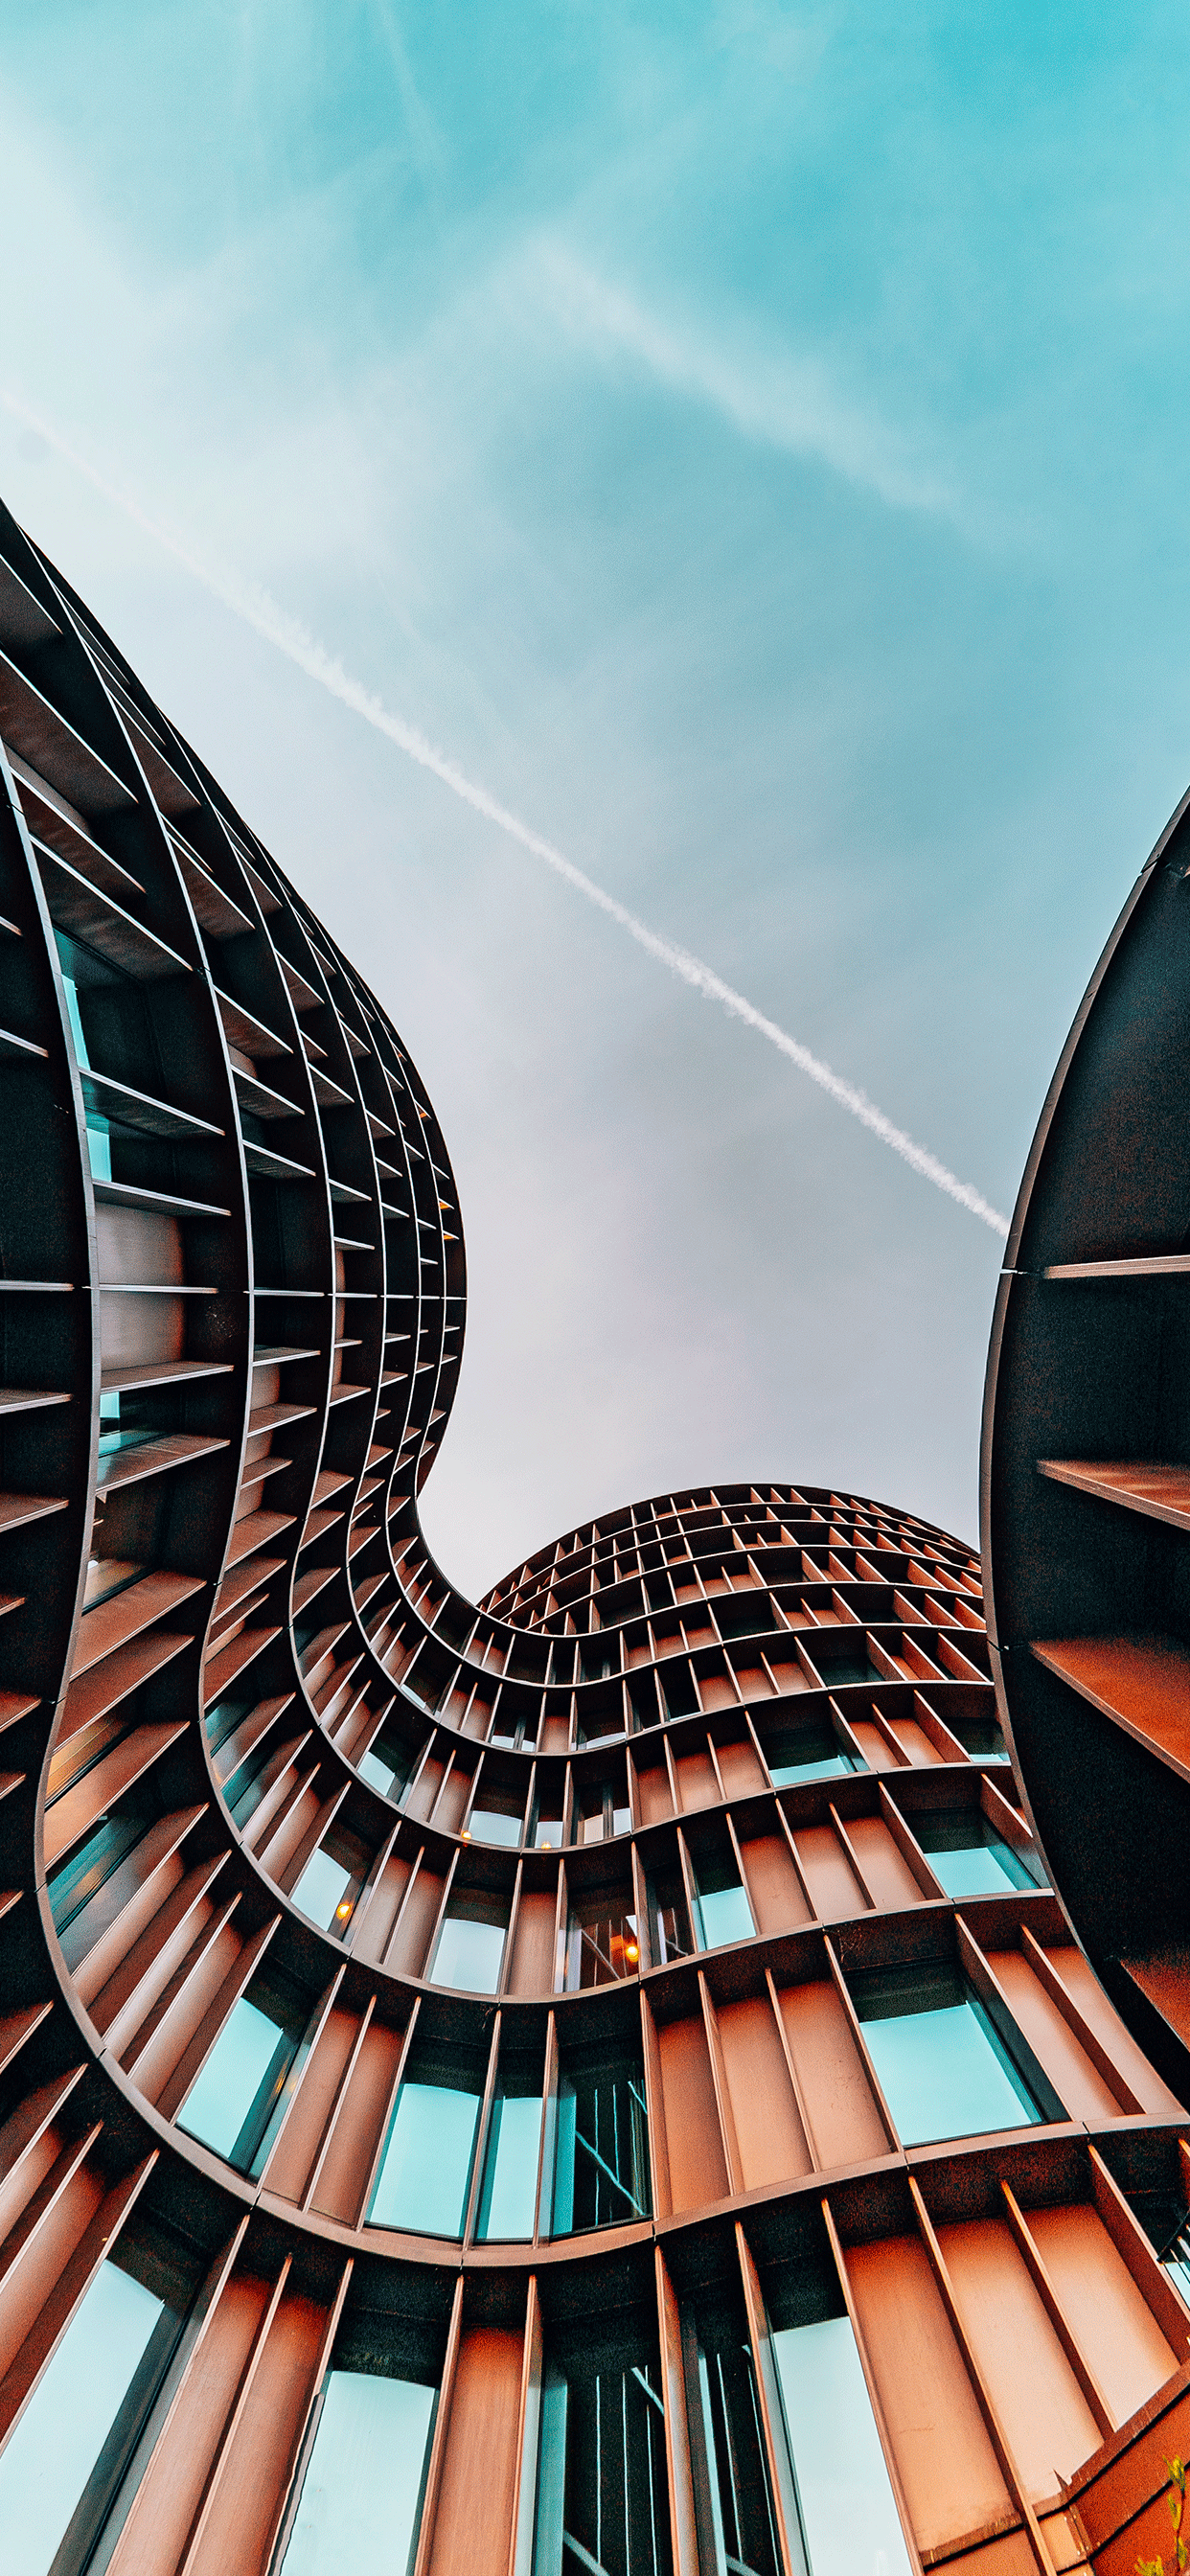 Iphone Architecture Wallpapers Top Free Iphone Architecture Backgrounds Wallpaperaccess